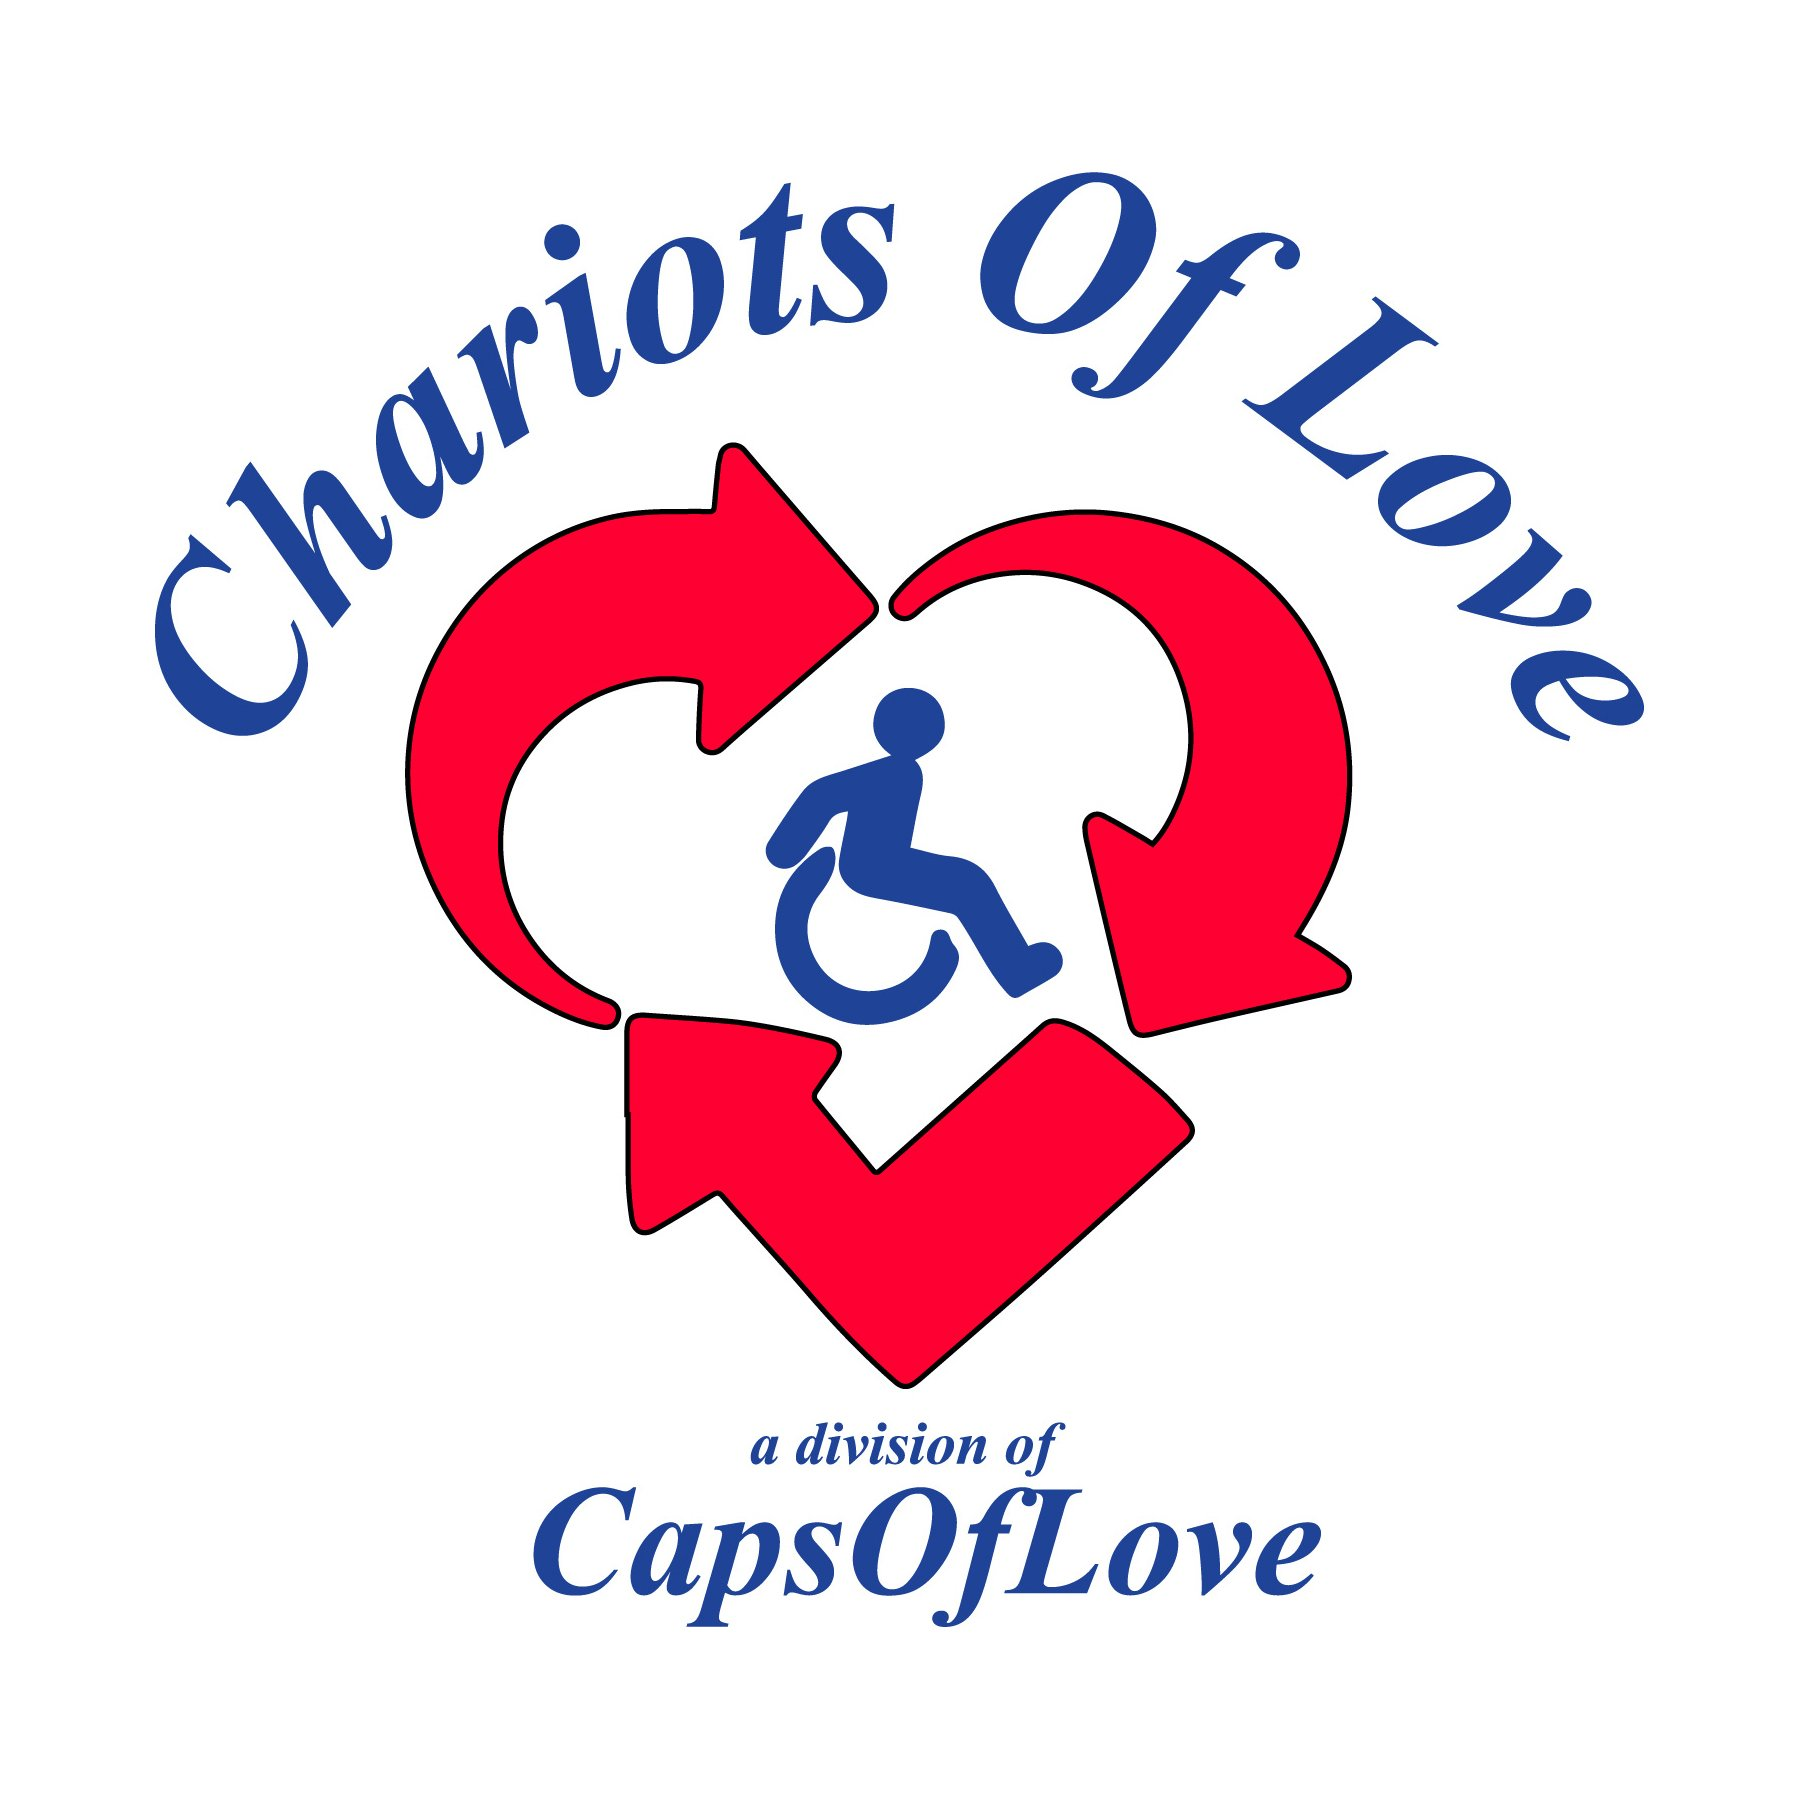 Chariots Of Love